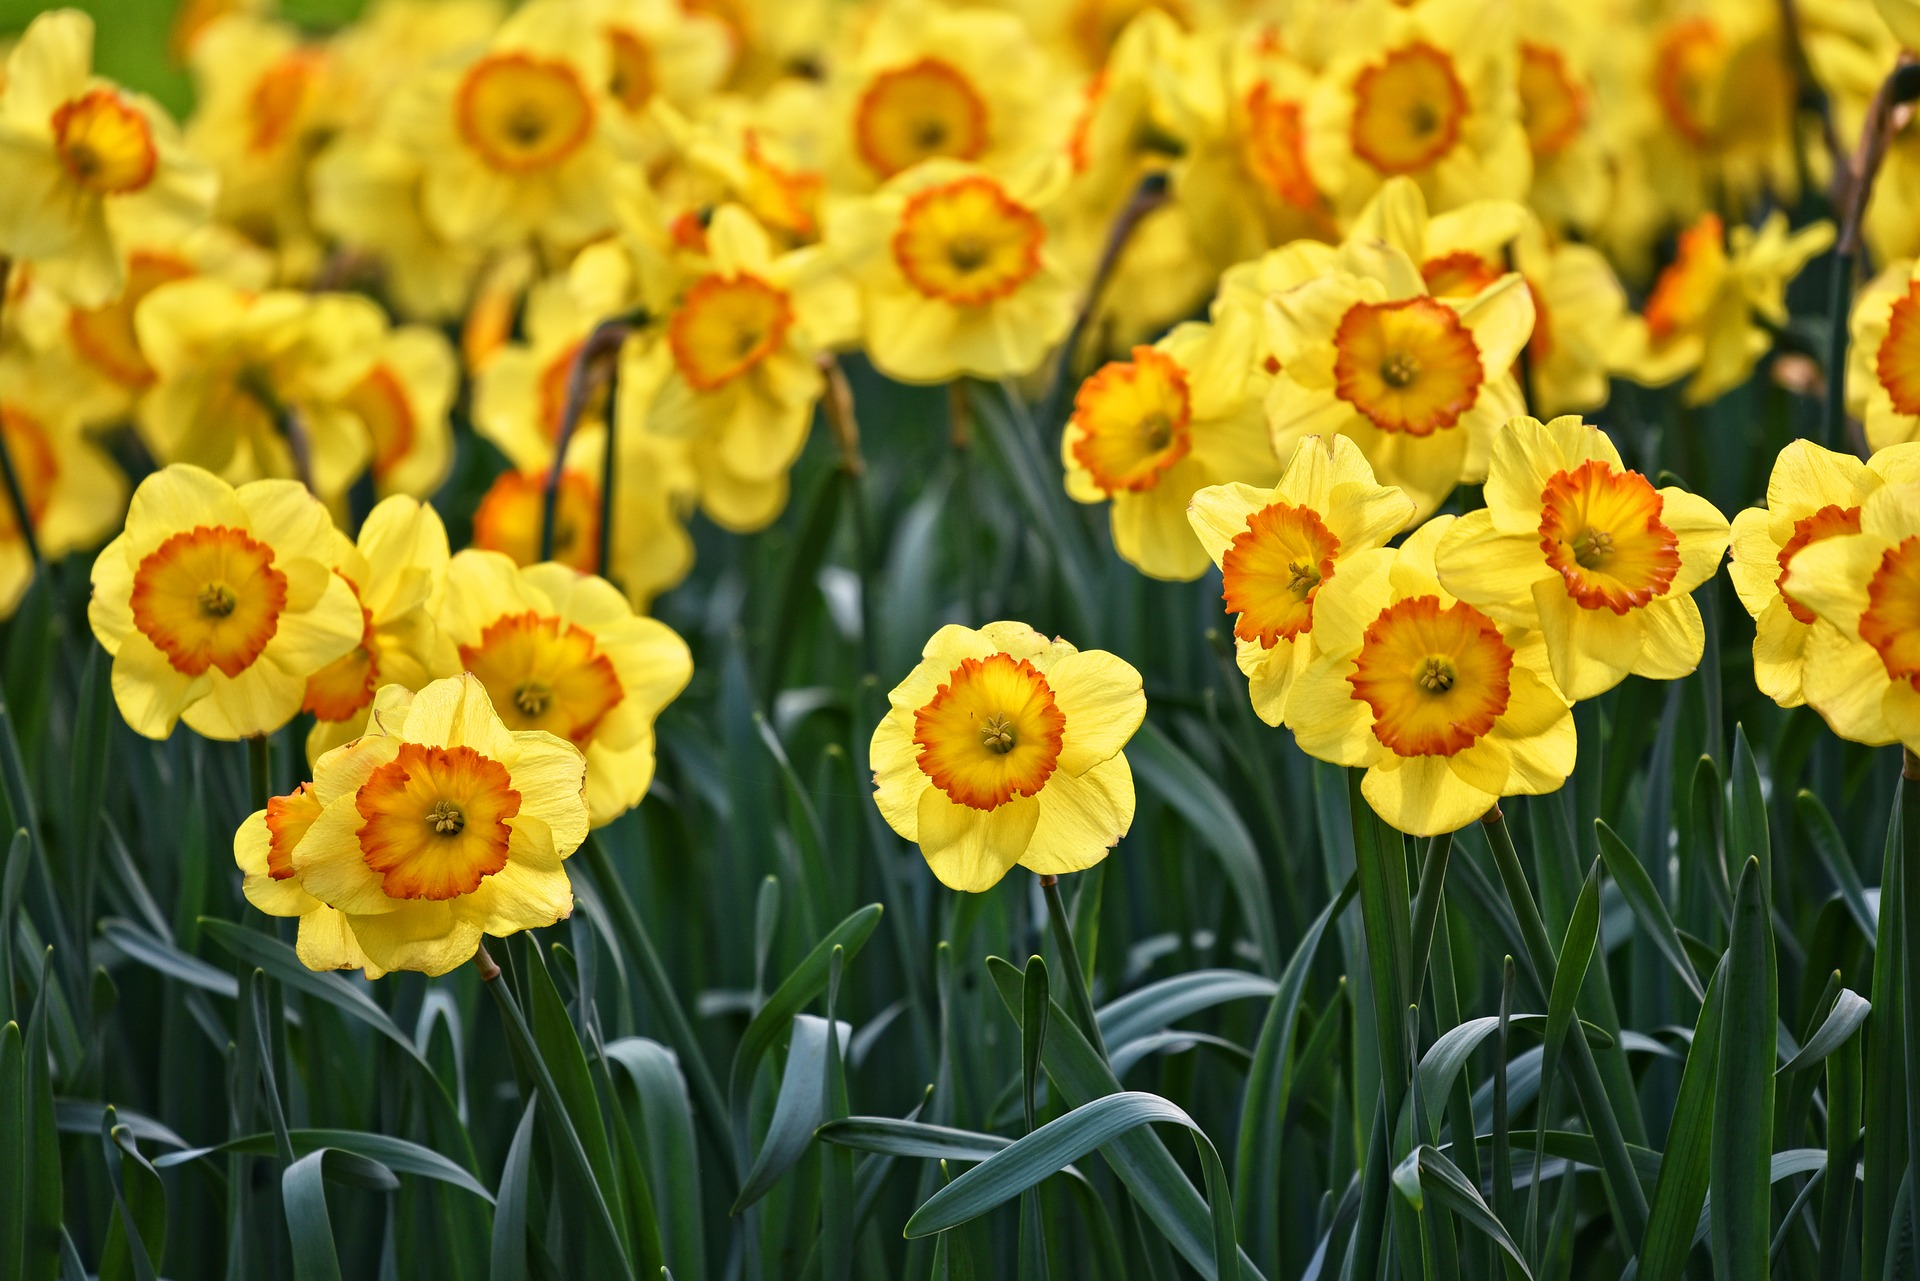 A field of daffodils in bloom